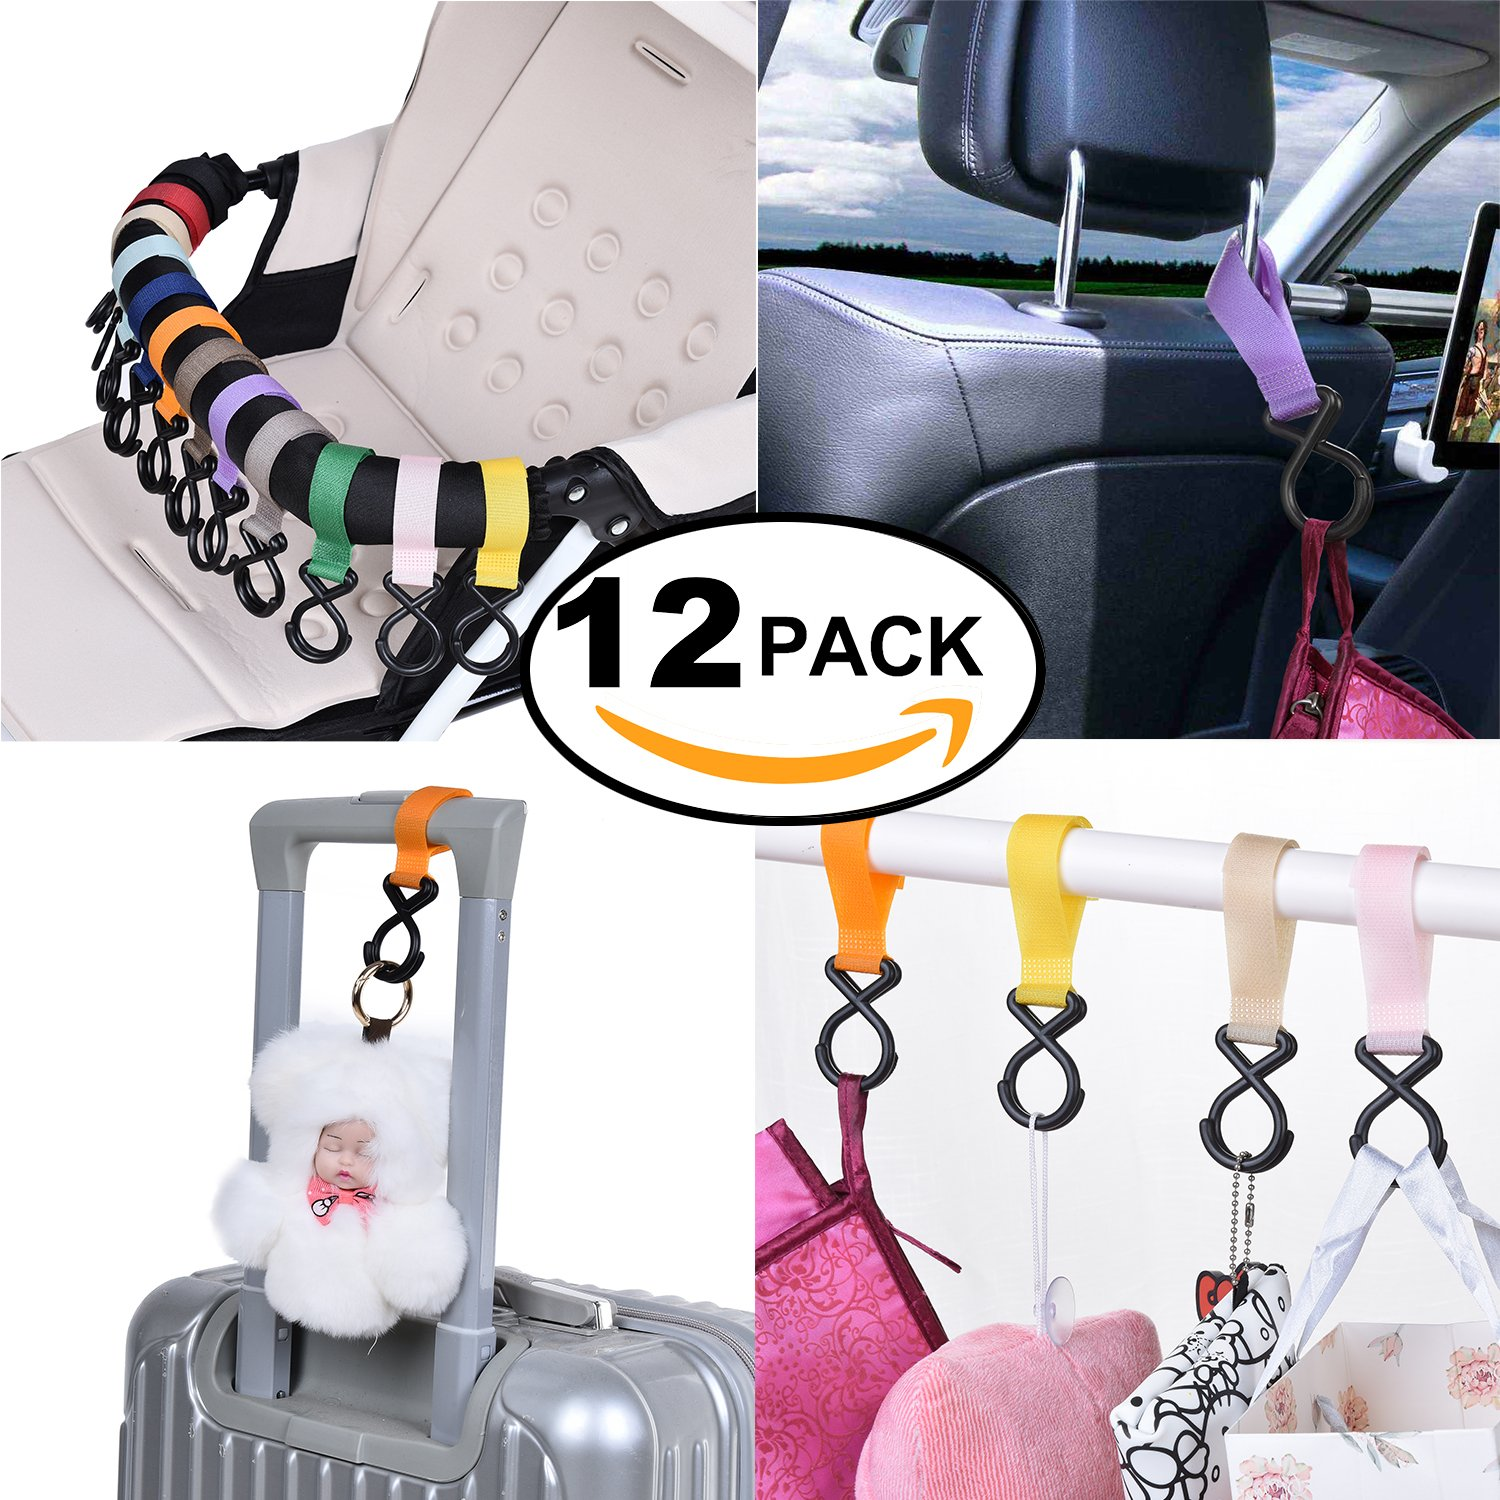 APURSUE 12 Pack Stroller Hooks Baby Stroller Accessories, Multi Purpose Hooks for Home Office, Automotive Car Seat Headrest Hooks Door & Seat Back Organizers Hanging Handbags Hangers Bottle Cup Holder